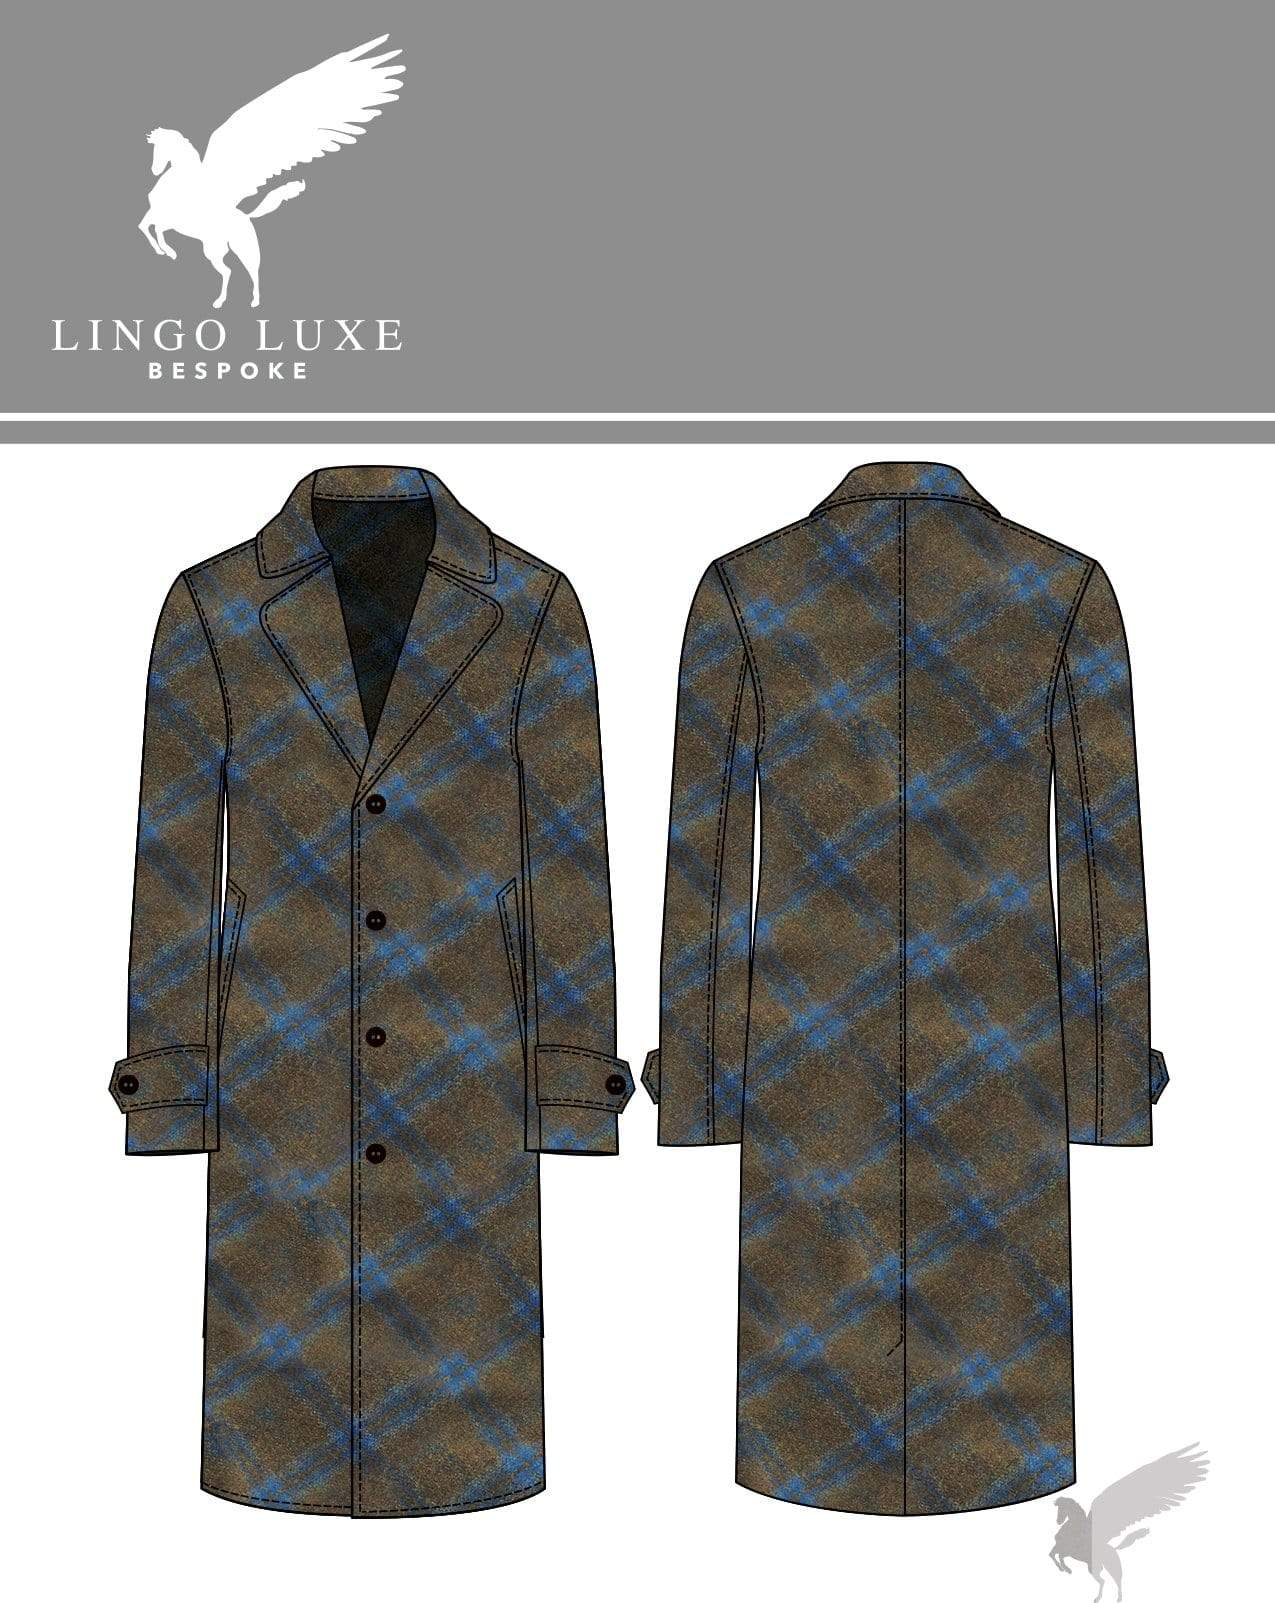 Outerwear | Lingo Luxe The Stately Overcoat | Meadows & Blue-Lingo Luxe Bespoke